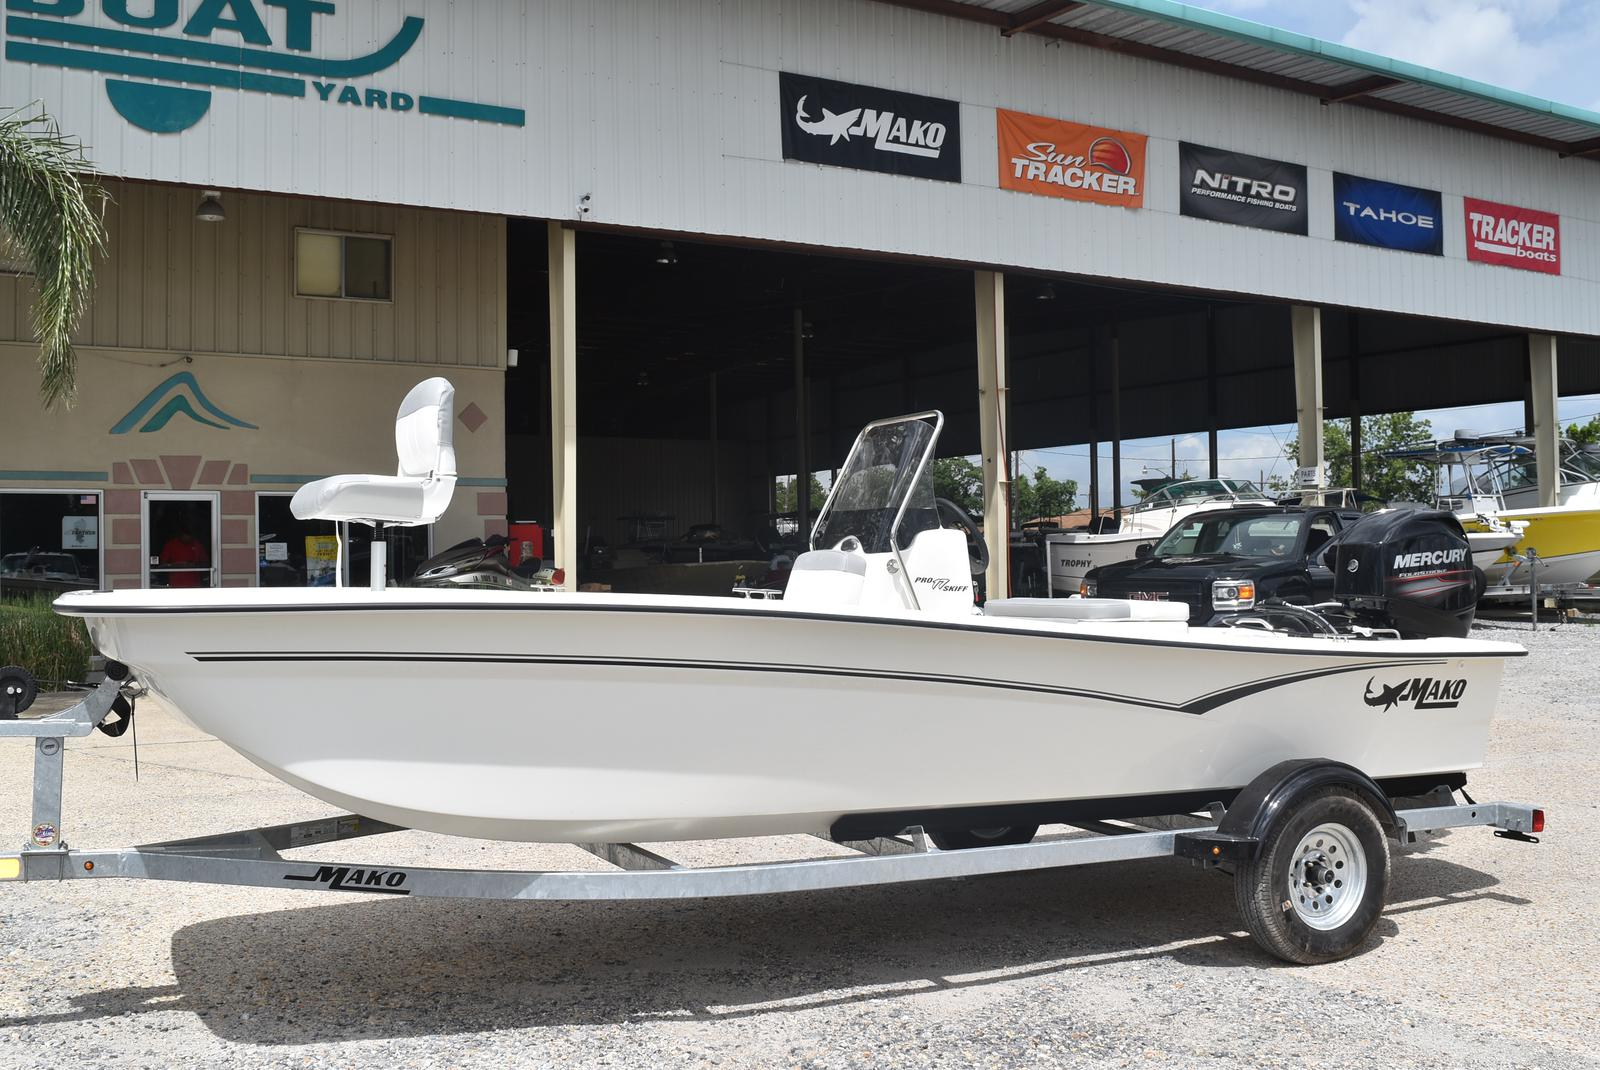 2020 Mako boat for sale, model of the boat is Pro Skiff 17, 75 ELPT & Image # 92 of 702